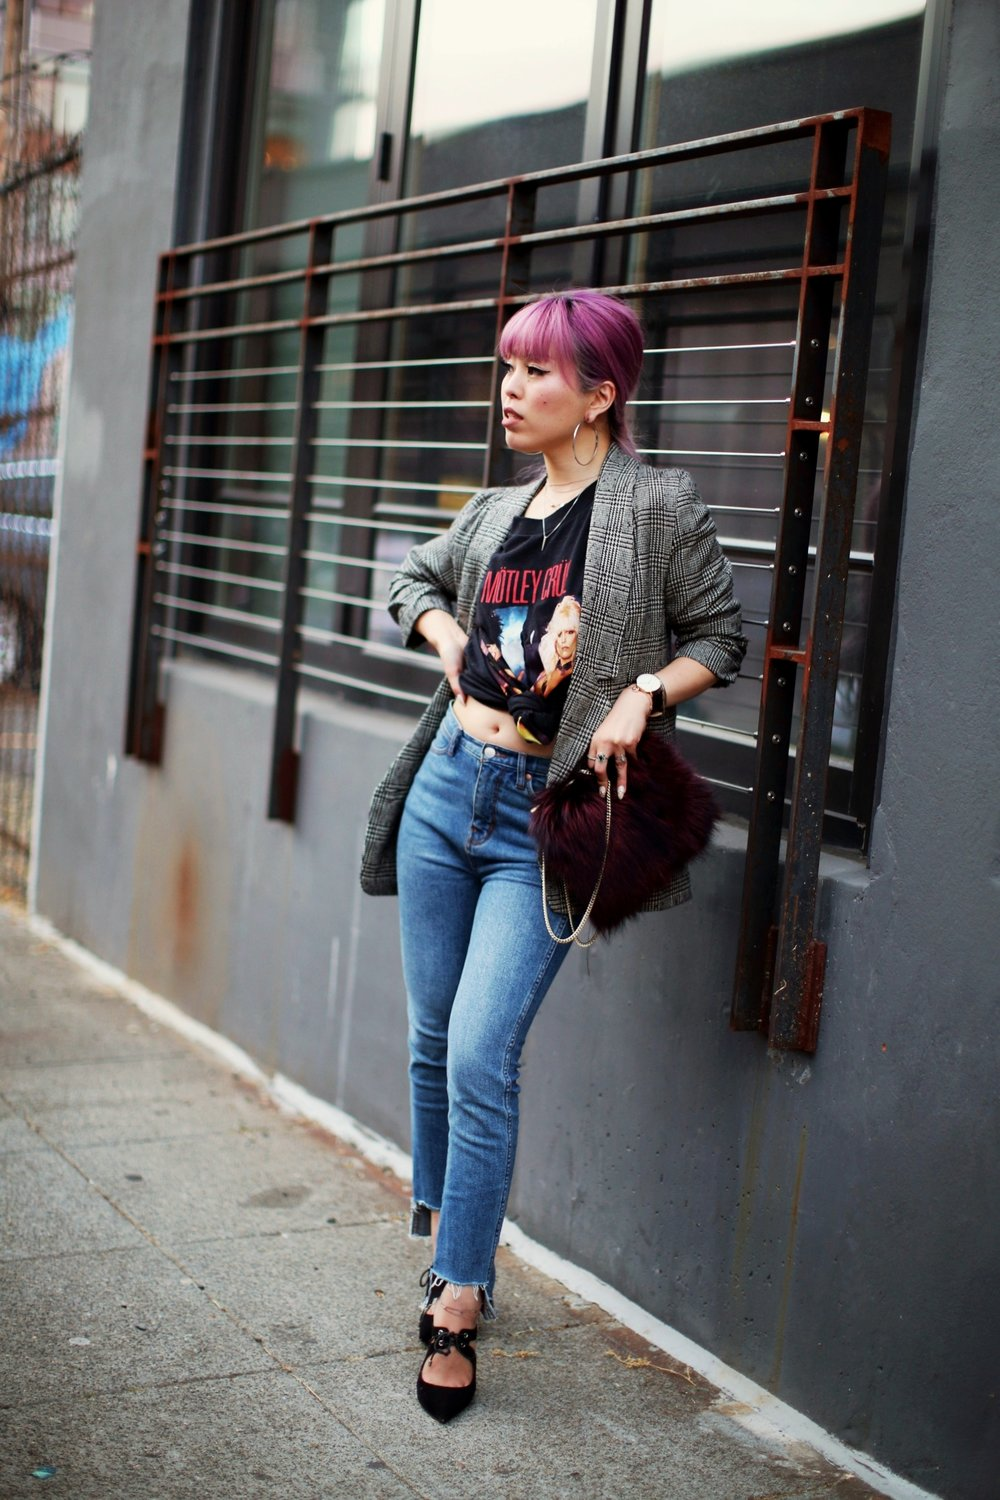 Nordstrom Plaid Blazer_Vintage Rockband Tee_Free People High Waisted Jeans_Daniel Wellington Watch_ASOS Black Mules_DVF Fur Bag_Swarovski Remix Collection Smiling Face_Pink Hair_Aika's Love Closet_Seattle Fashion Style Blogger_Japanese 18